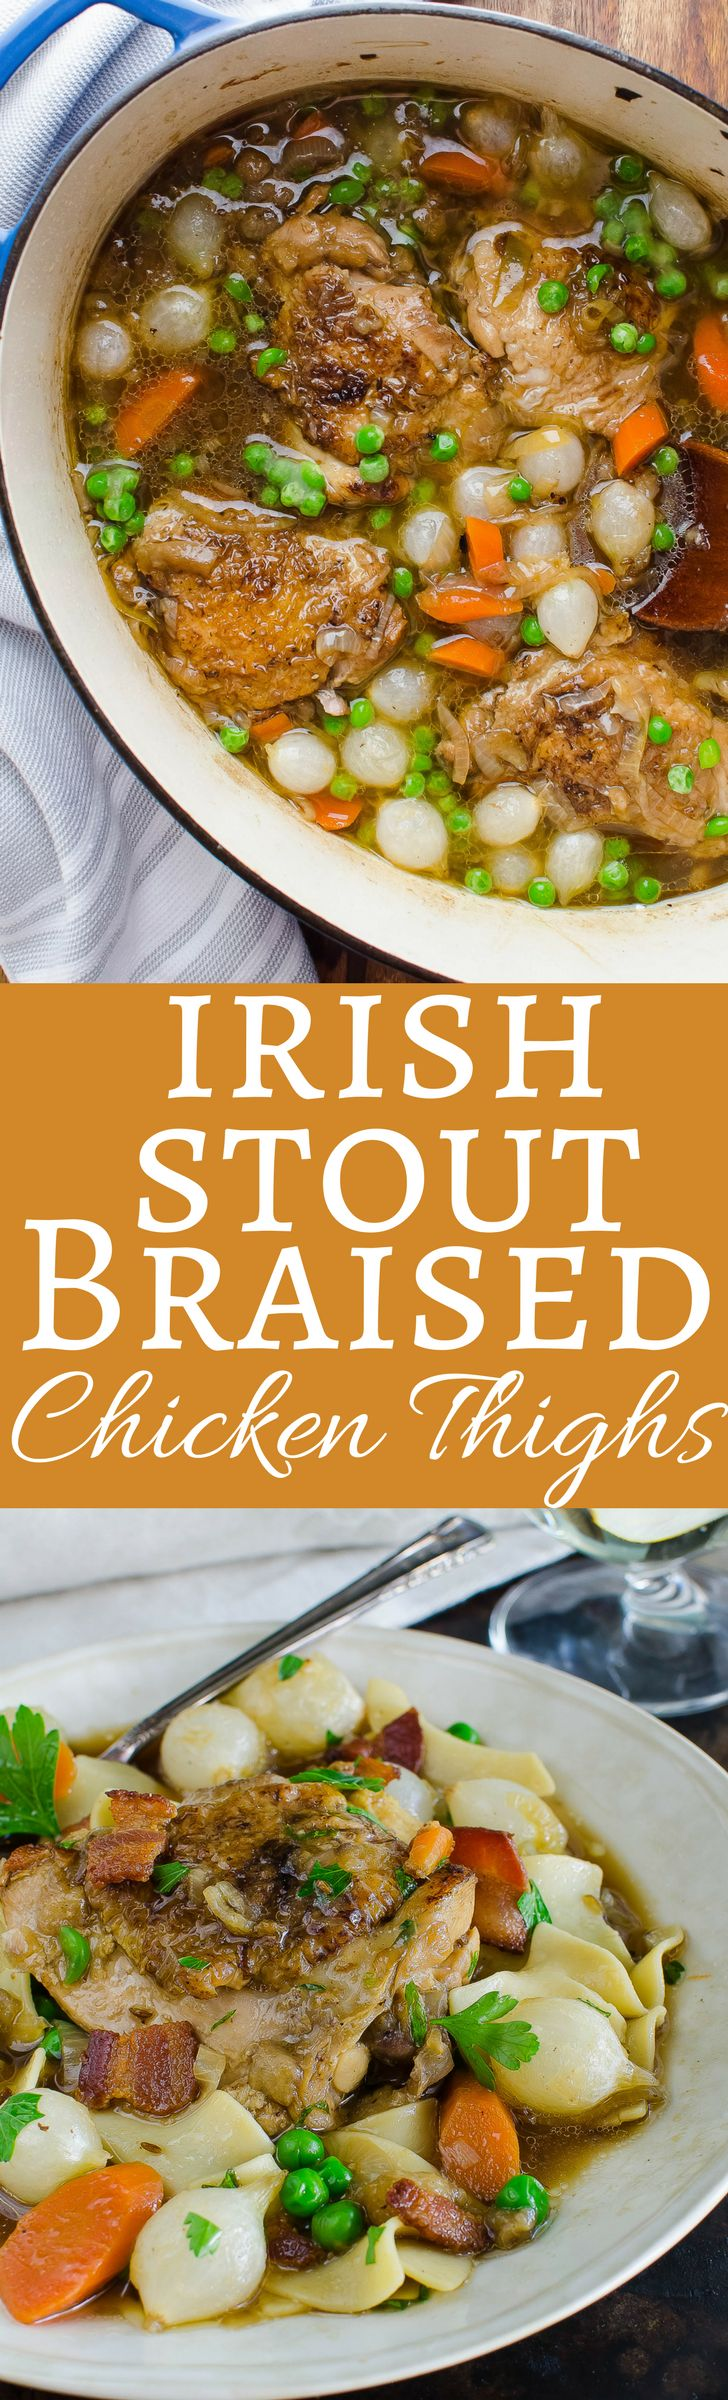 This easy chicken recipe uses Guinness to make a savory gravy perfect for Saint Patrick's Day! This one-pot recipe is loaded with onions, carrots, peas and bacon with meaty chicken thighs!